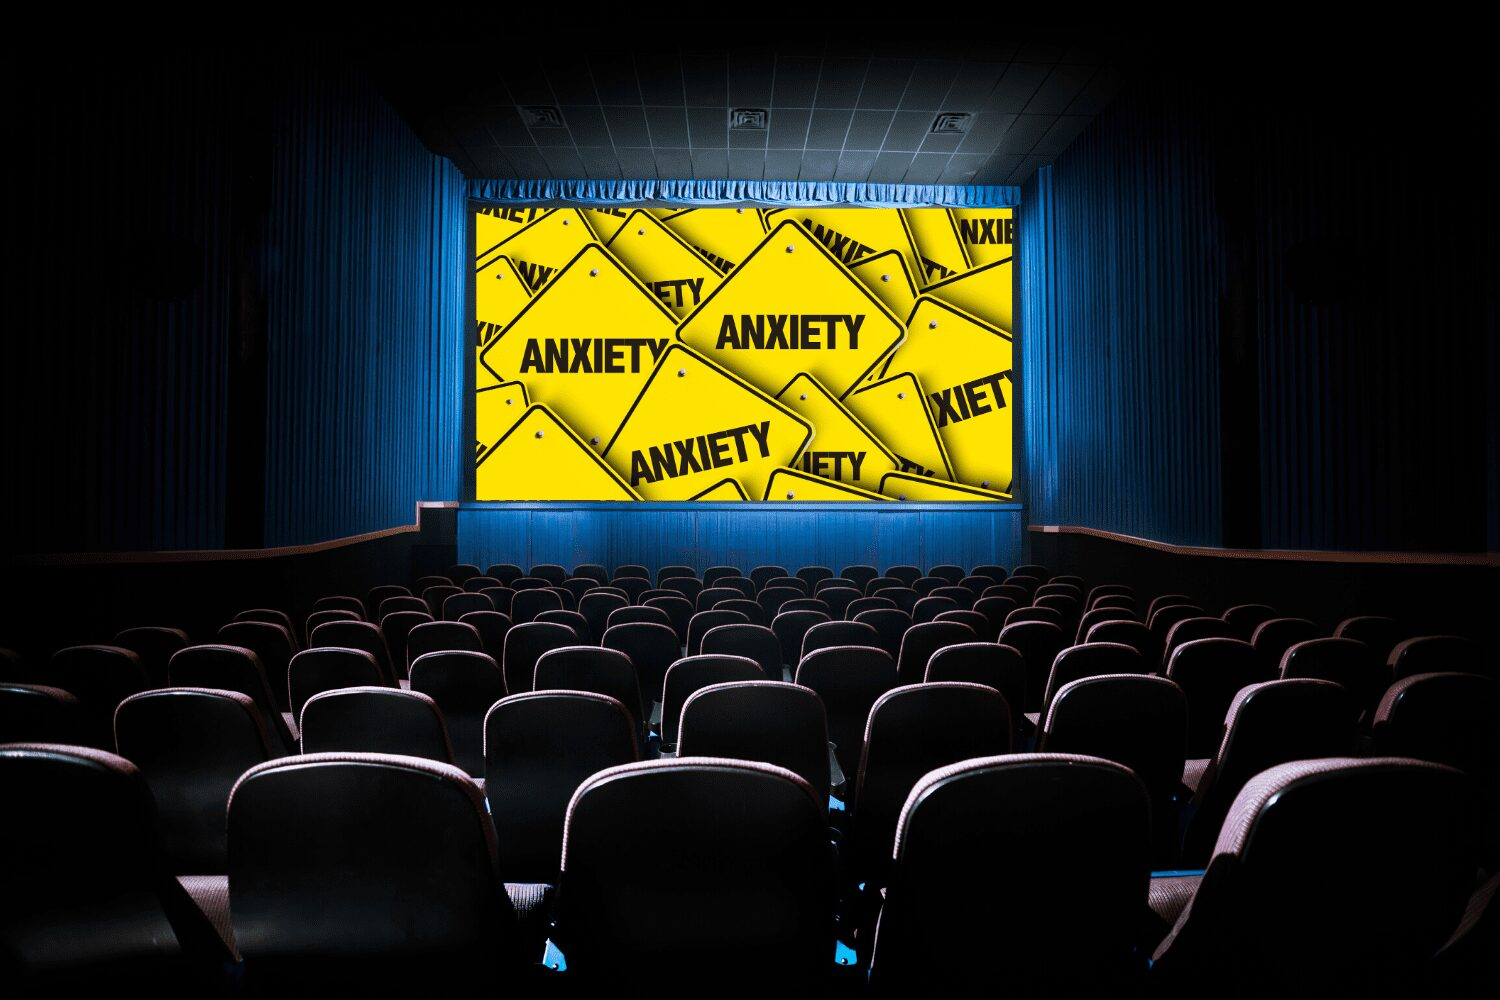 anxiety in a movie theater